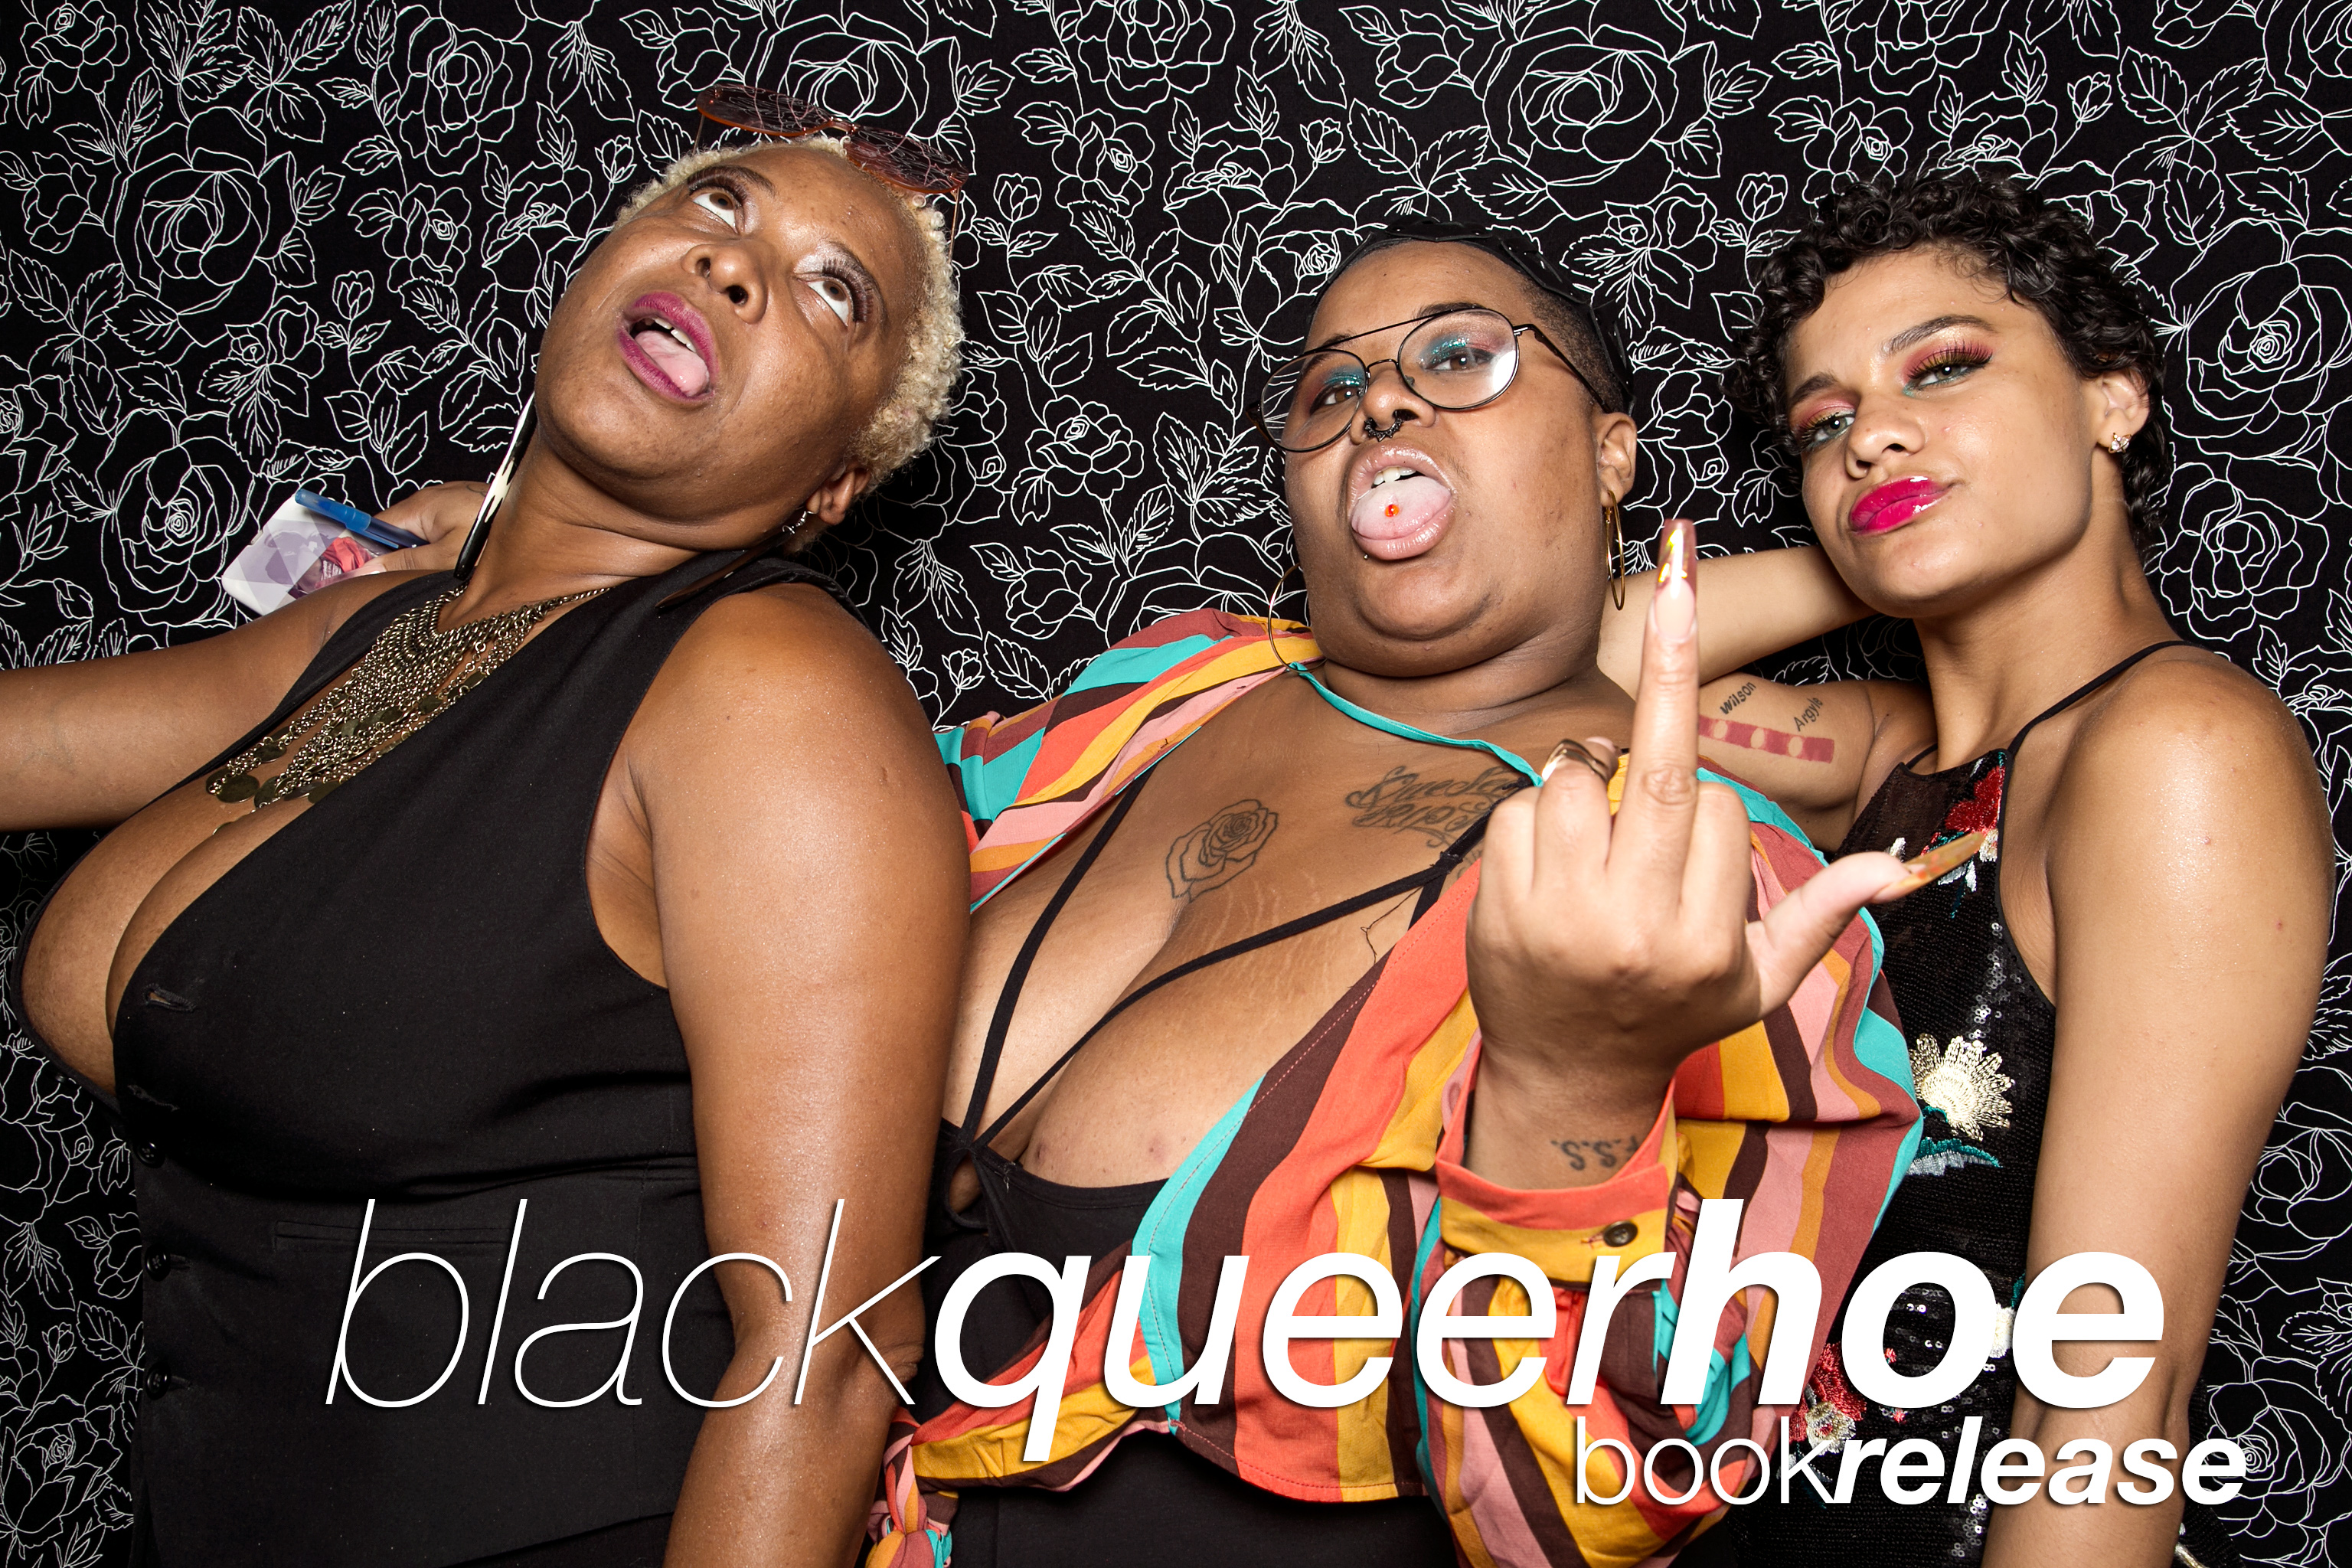 glitterguts photo booth portraits from the black queer hoe book release at east room, chicago 2018